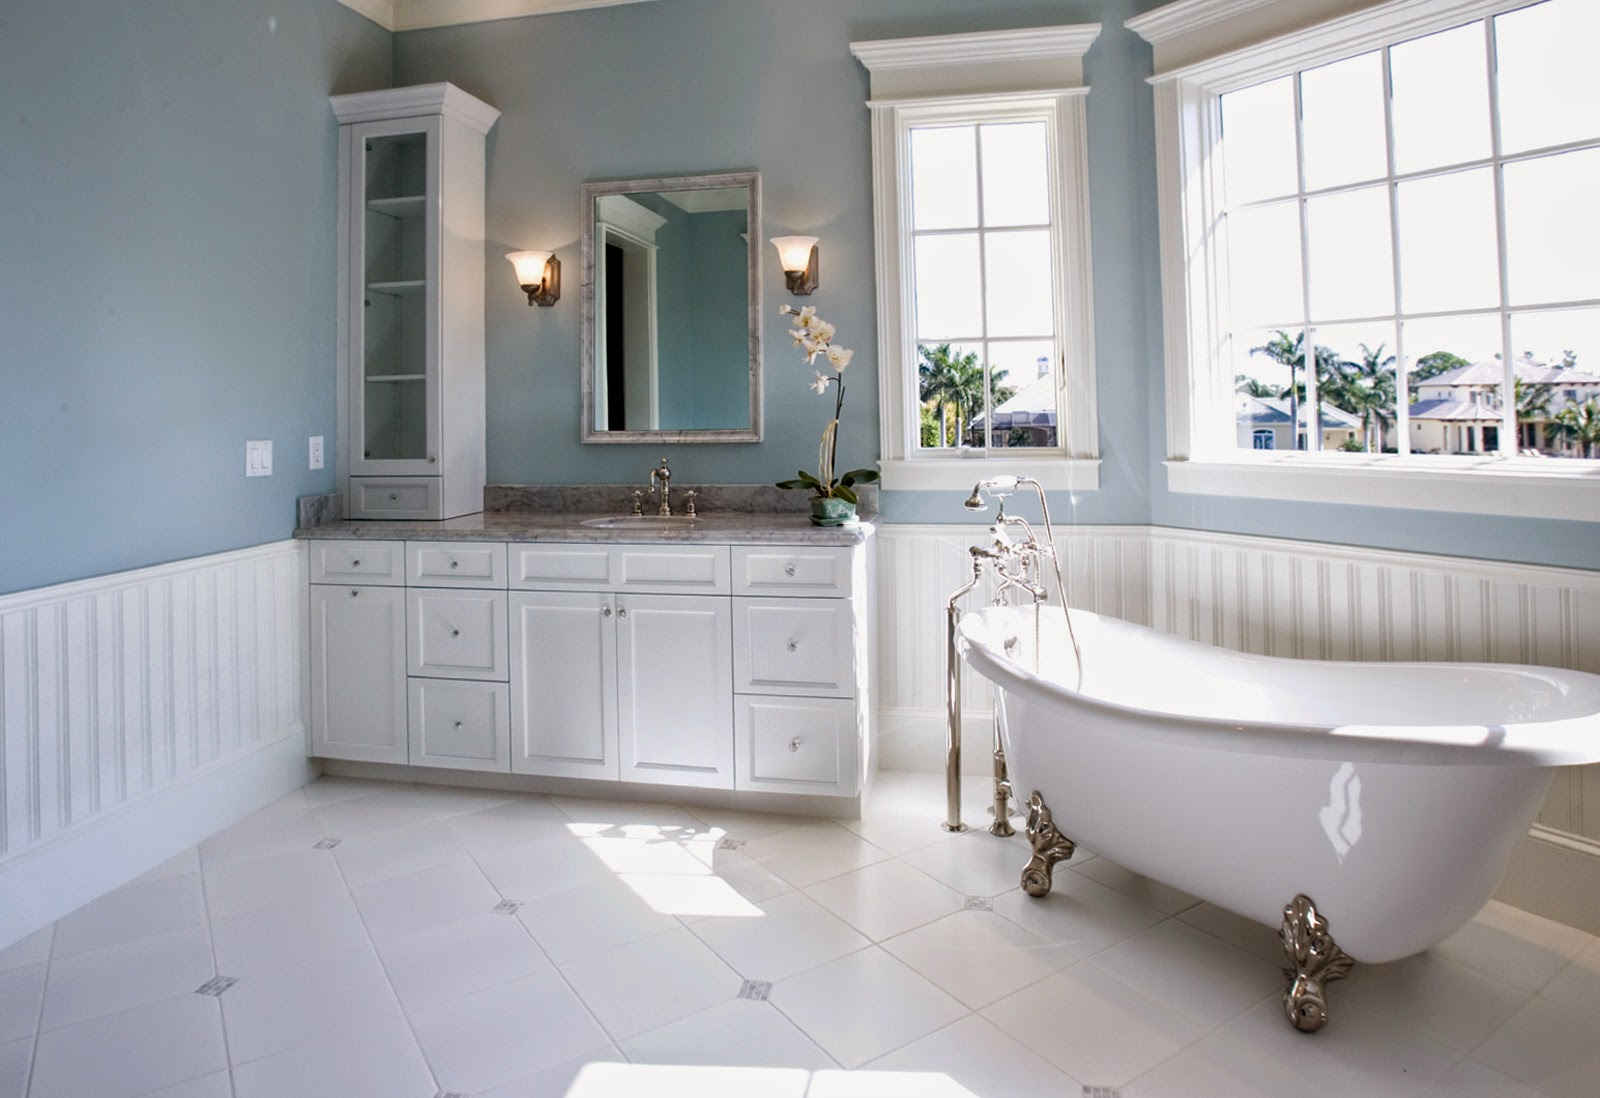 Top 10 beautiful bathroom design 2014 home interior blog for Bathrooms designs